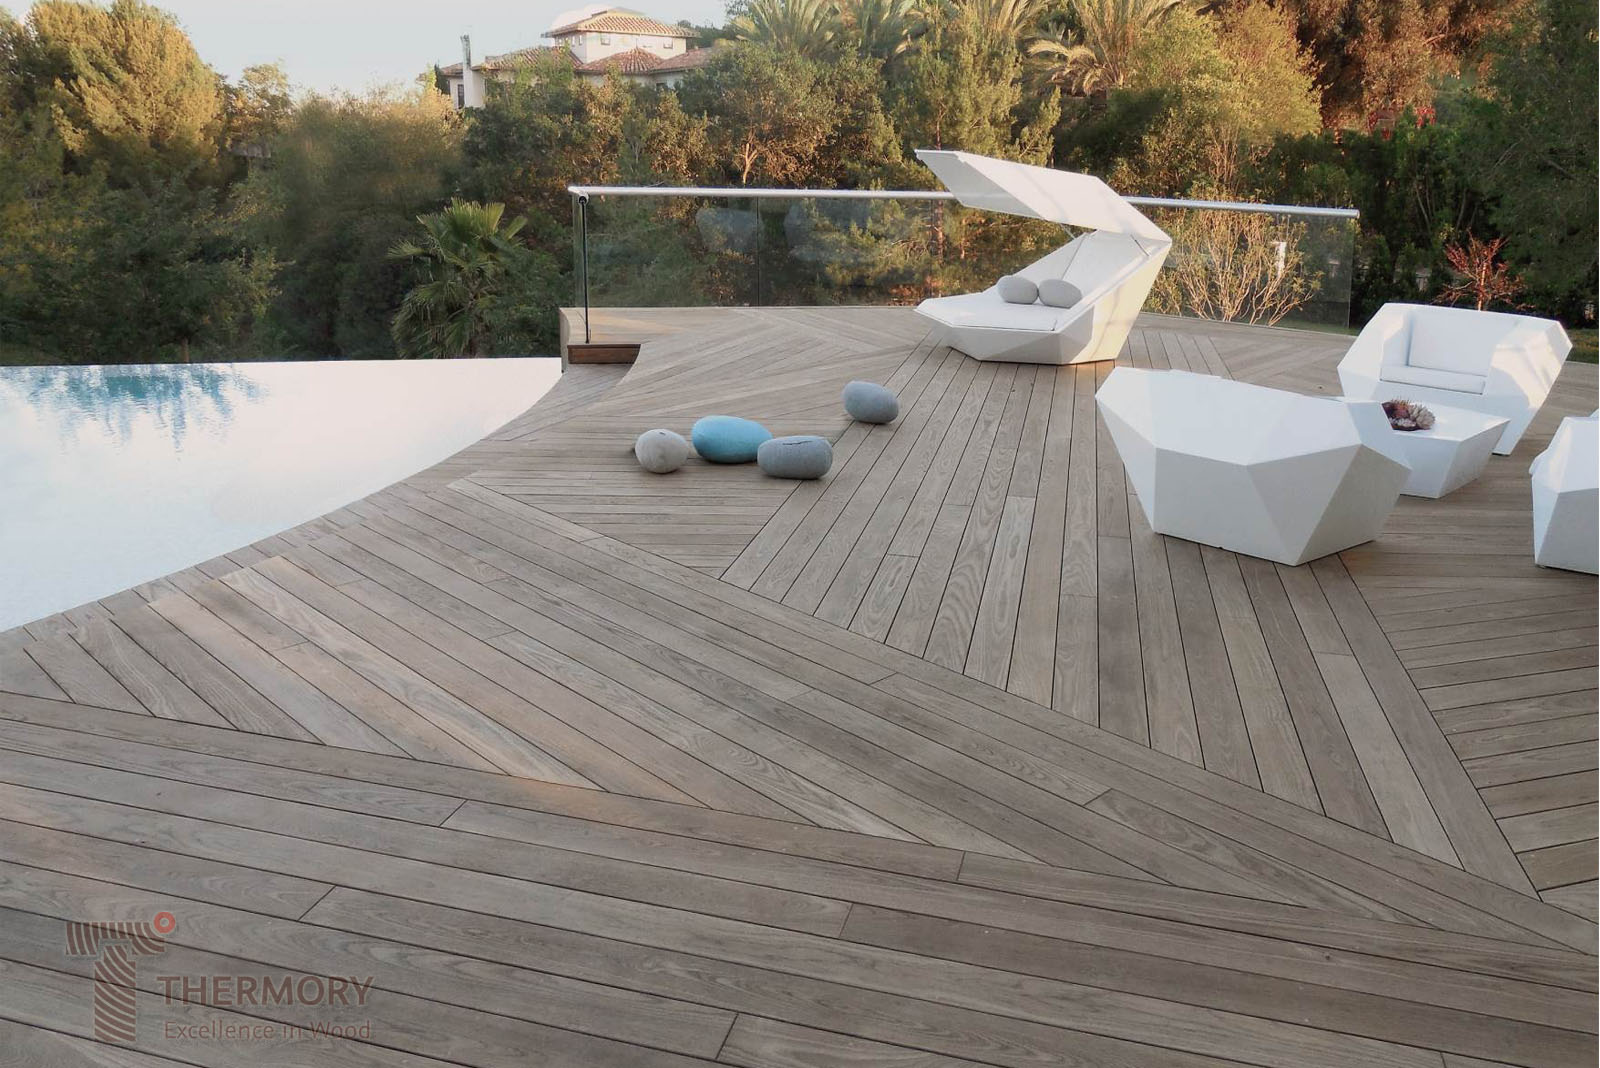 Thermory Ash Decking_D4_20x150mm, USA (1).jpg